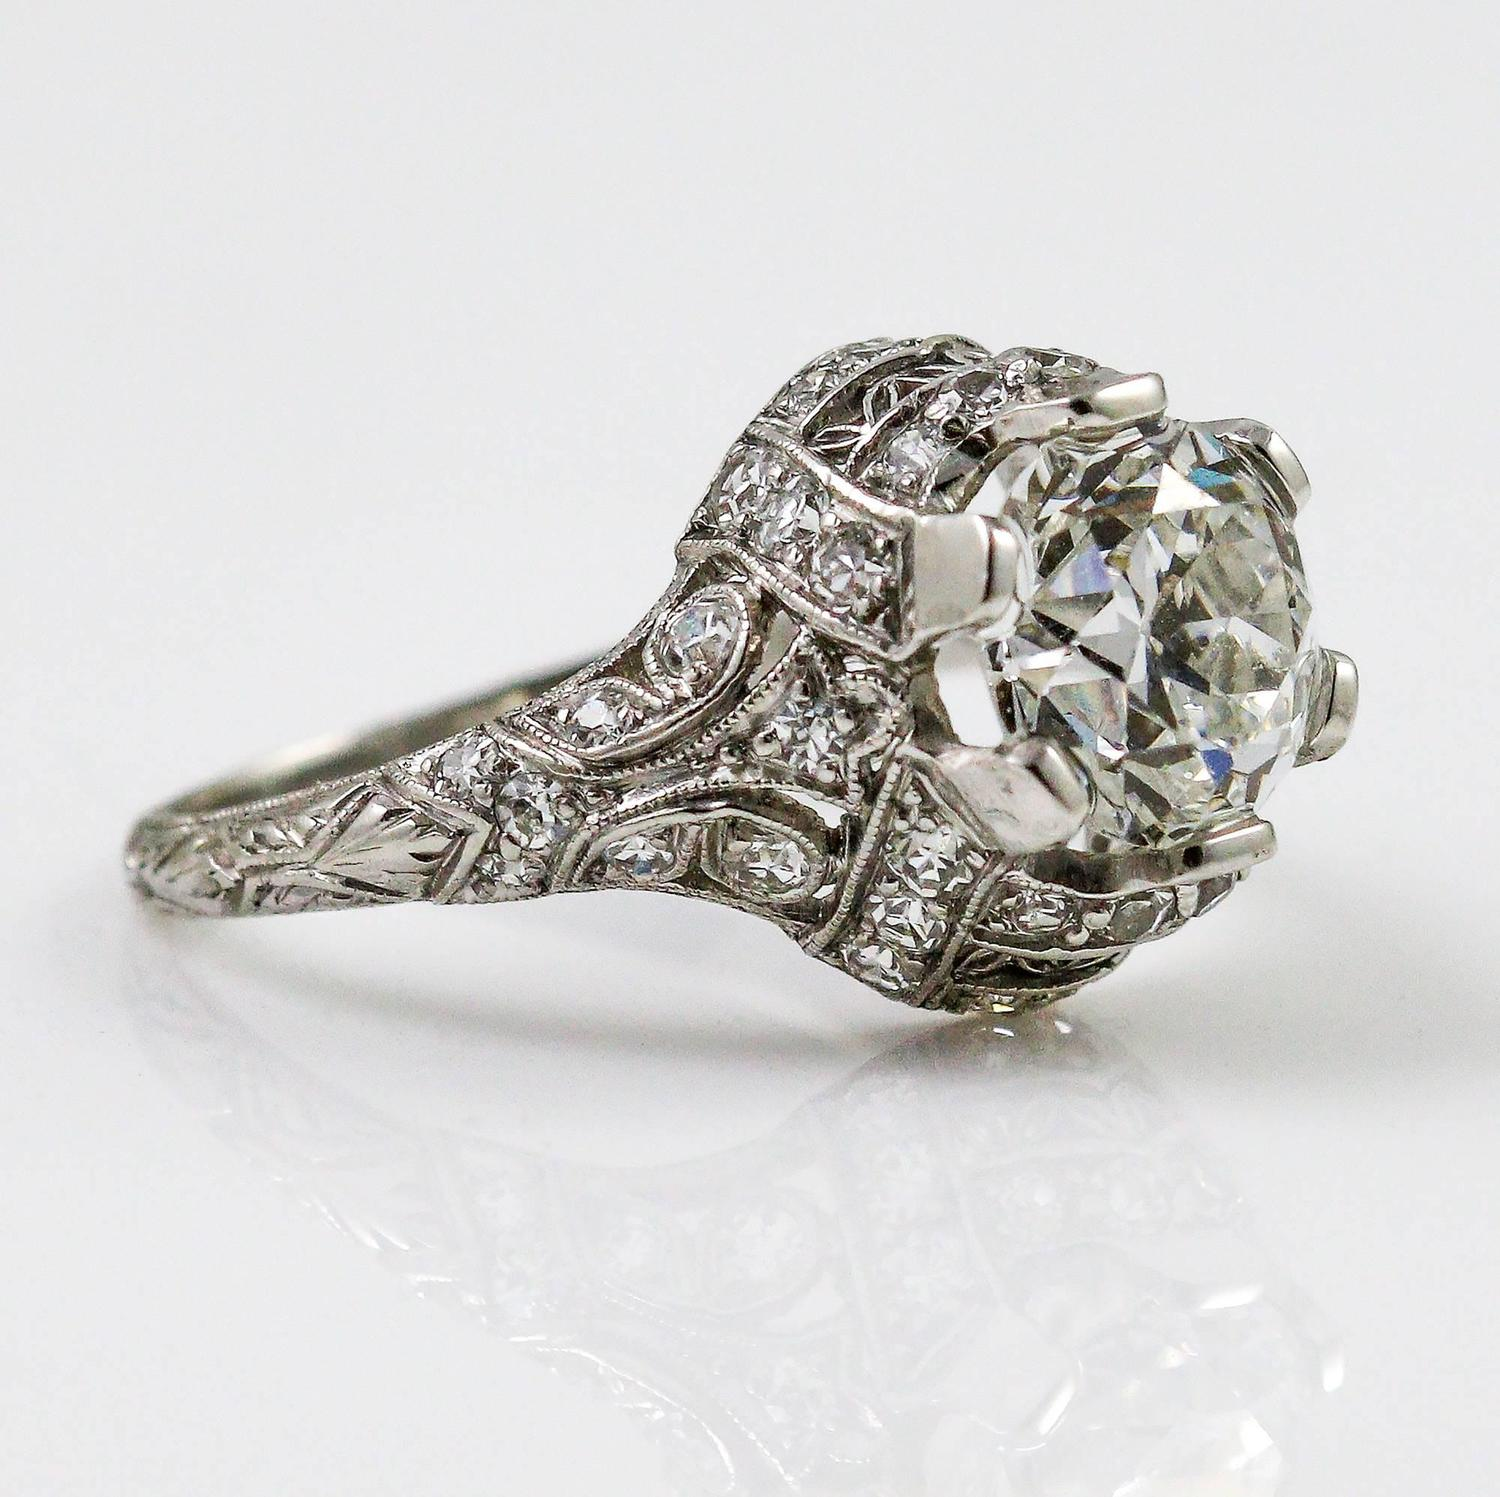 Edwardian GIA Cert Carat Diamond Platinum Engagement Ring For Sale At 1s